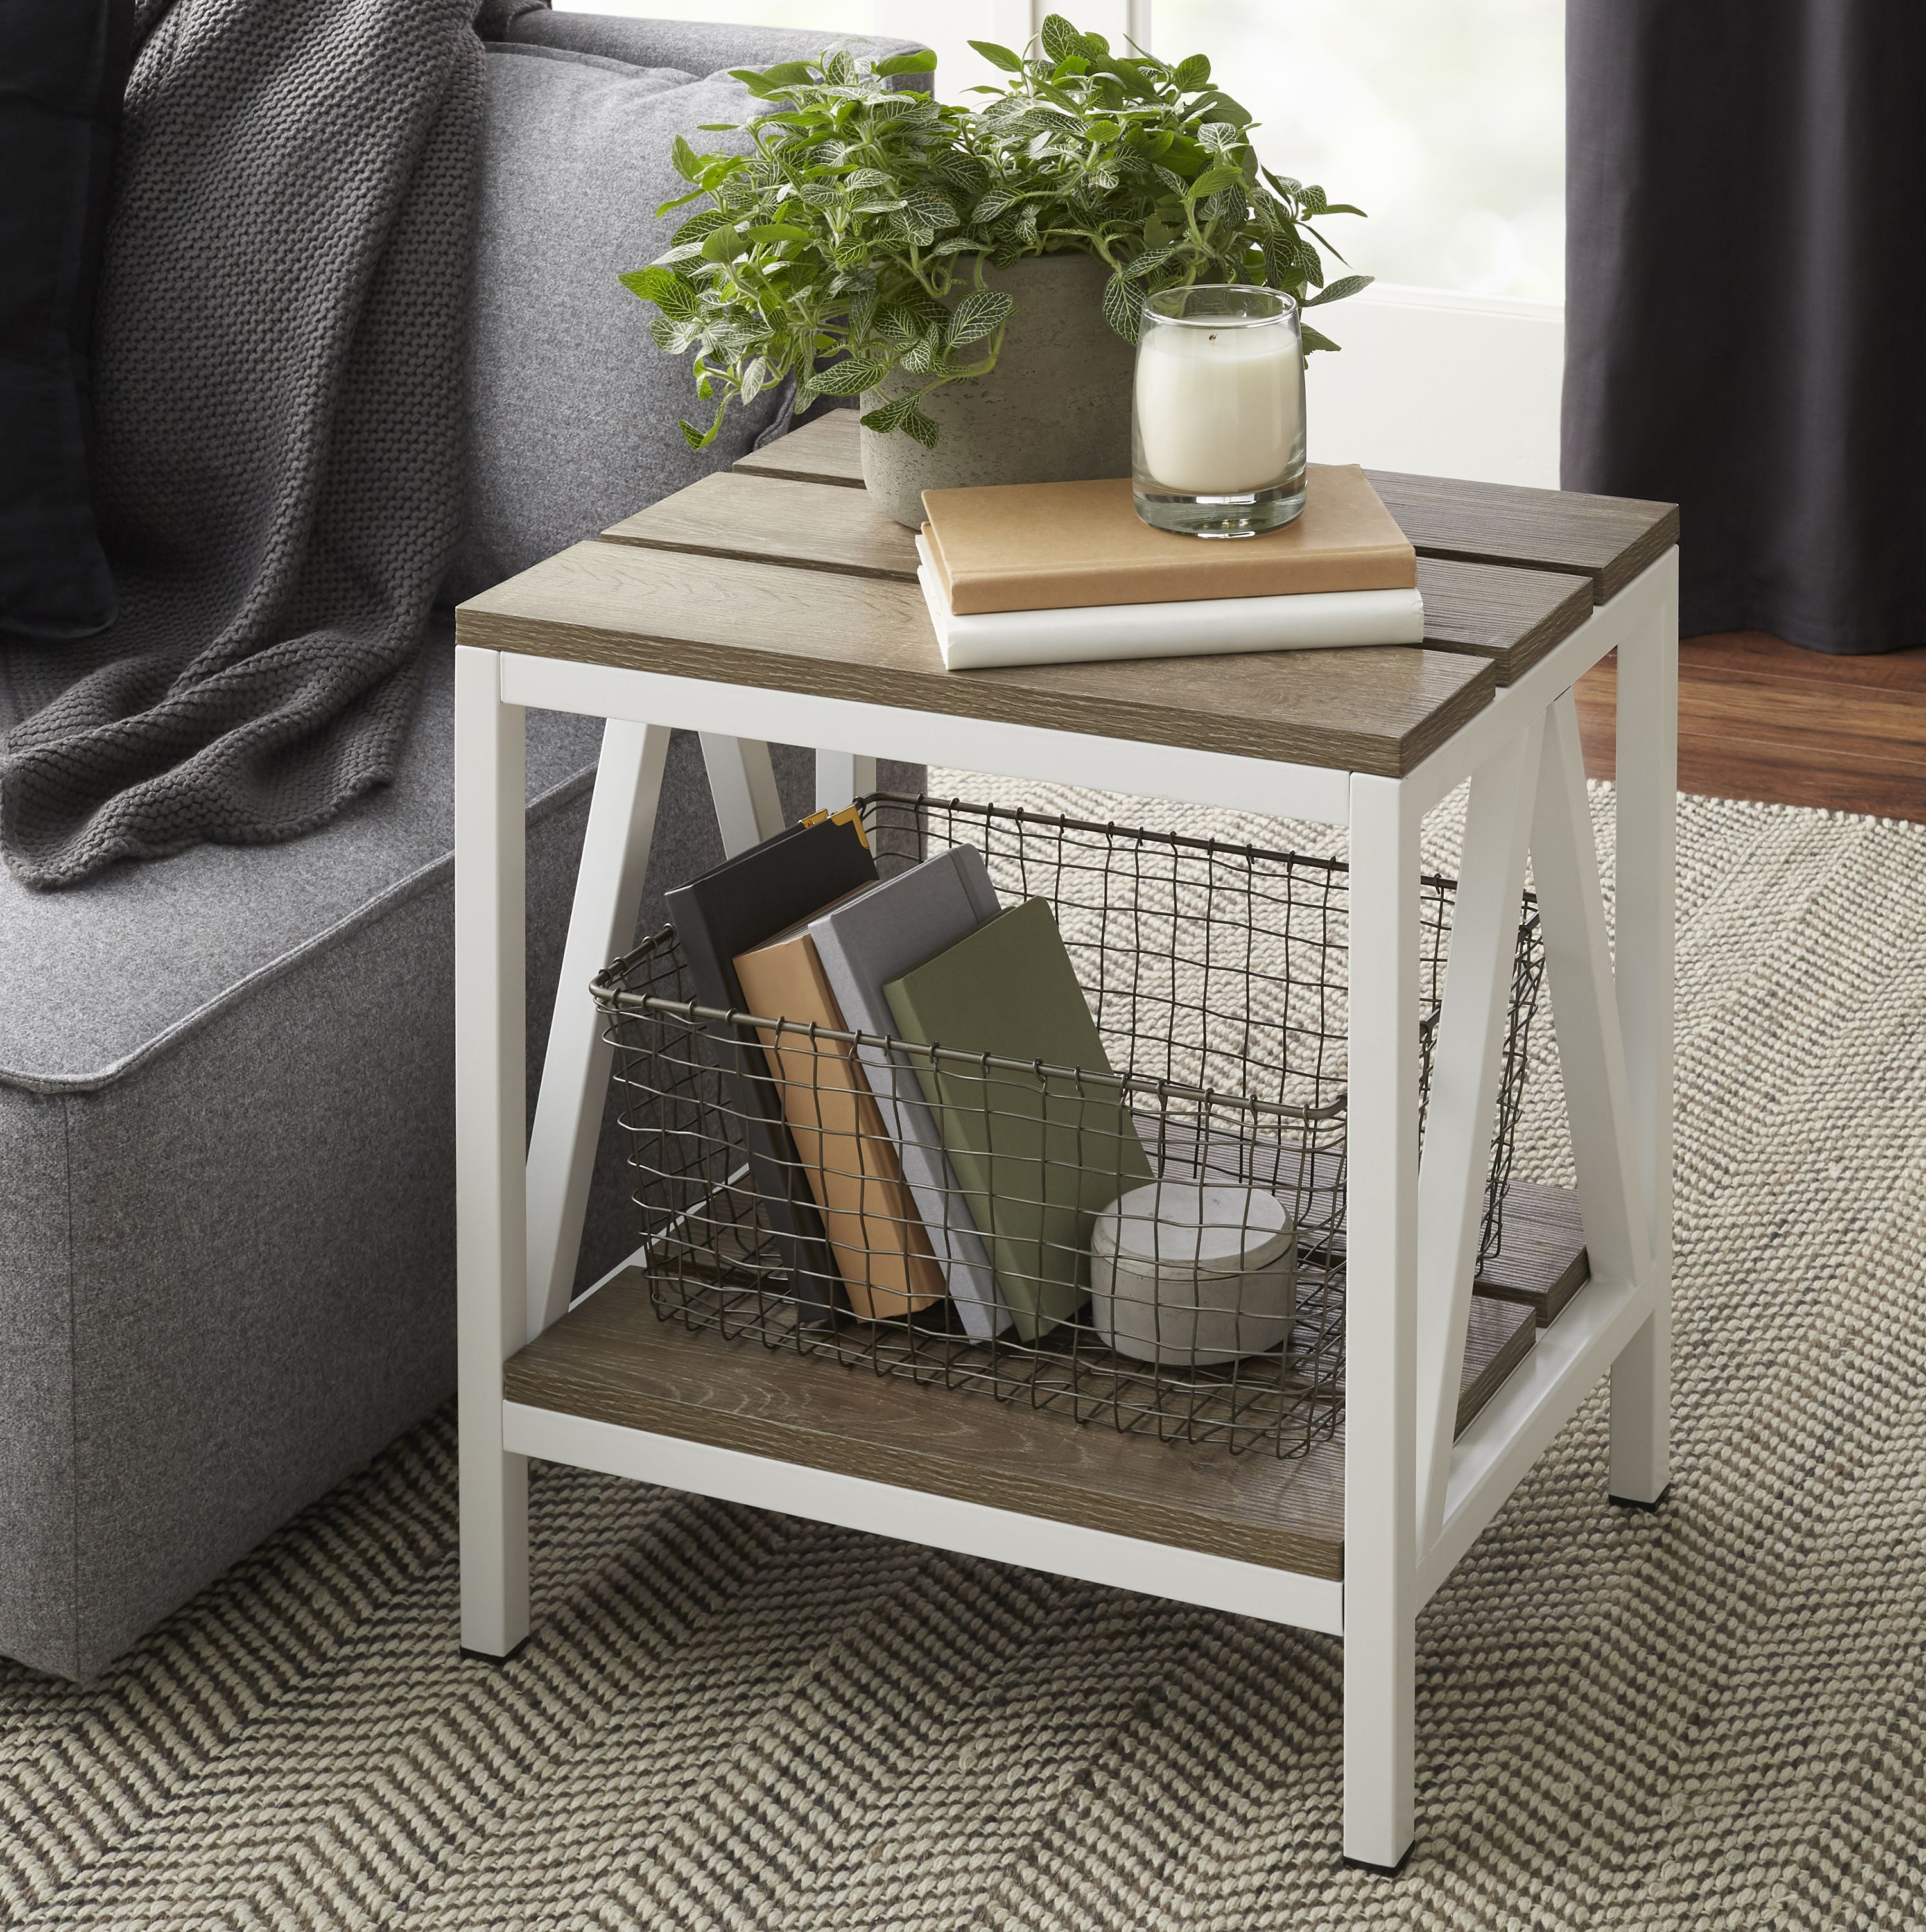 a4491acdc70cf264576e0c7ef8a997f1 - Better Homes And Gardens Bedford Accent Table